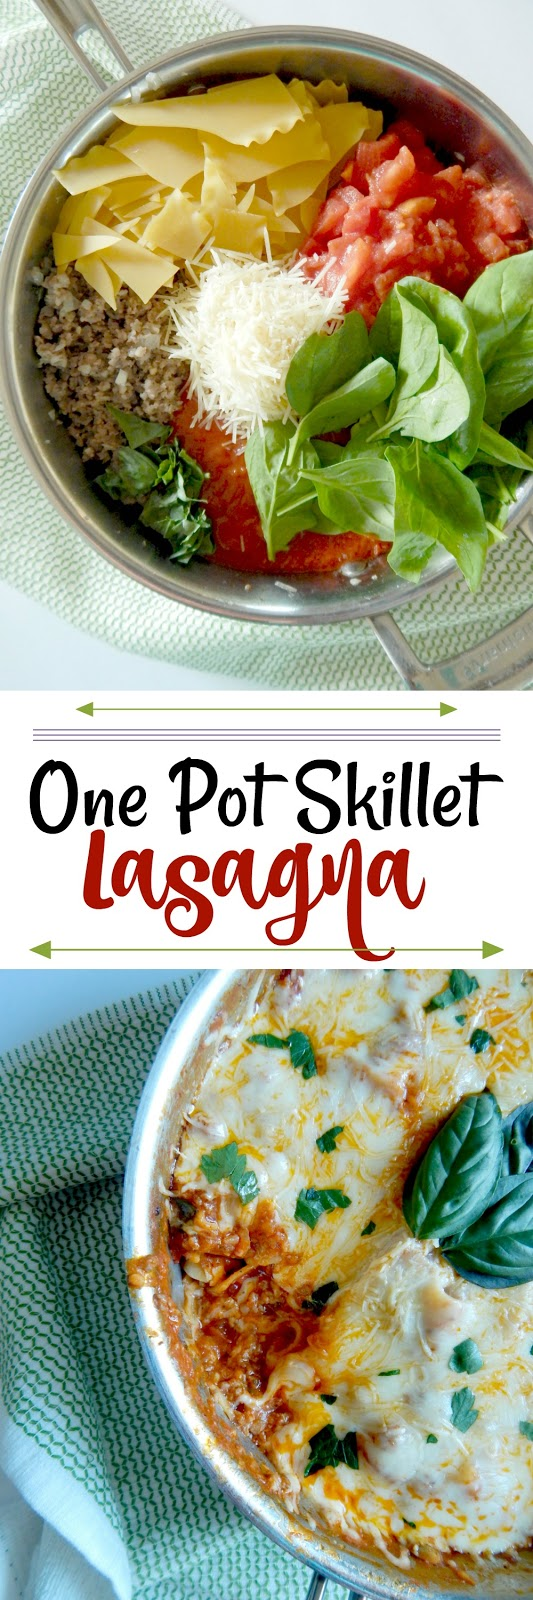 One Pot Skillet Lasagna...this short cut lasagna version is so good, maybe better than the real thing!  It takes under 30 minutes and full of the traditional lasagna favorites - noodles, tomatoes, marinara, spinach and CHEESE! (sweetandsavoryfood.com)